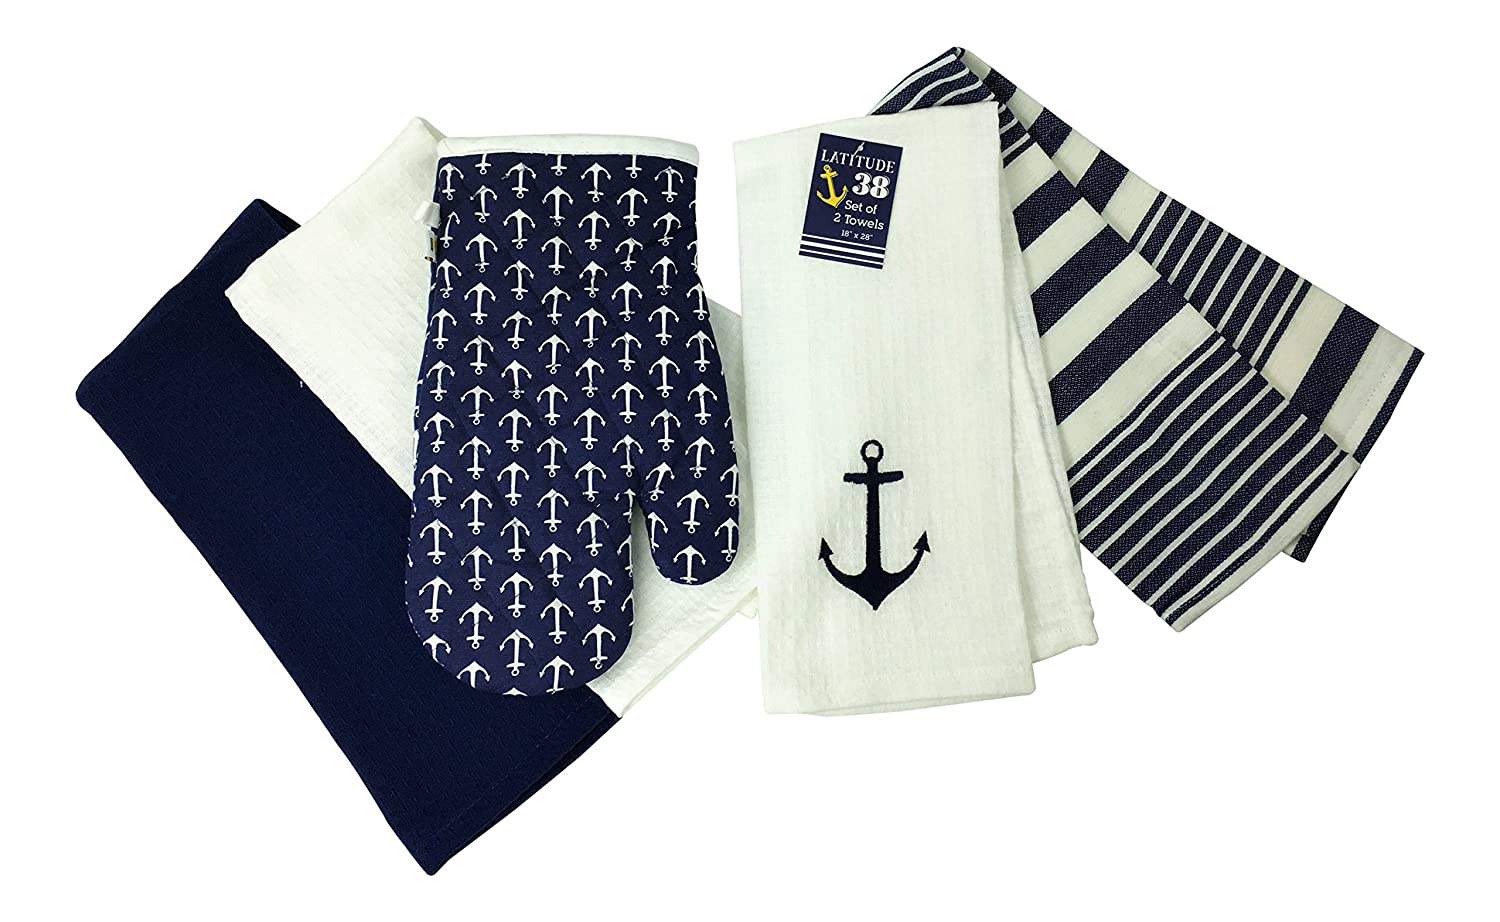 Nautical Anchor Embroidered Dish Towel and Oven Mitt, Set of 5 (Navy)